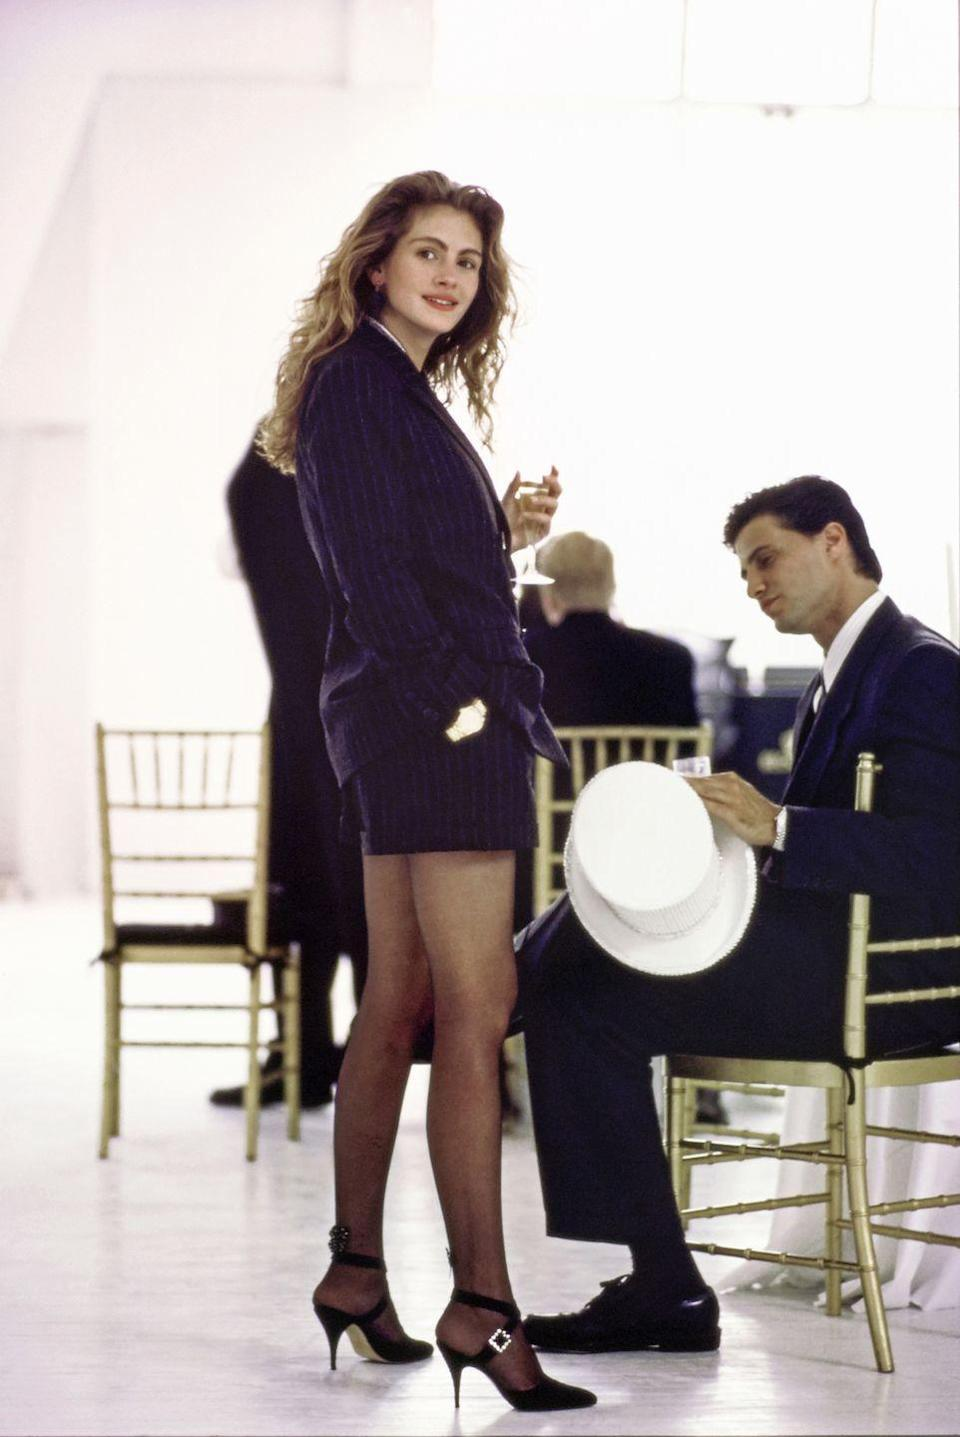 <p>Julia Roberts poses for a photoshoot in a pair of pinstripe dress shorts and a matching oversized blazer<em>. </em>Her older brother, Eric Roberts, is seen on the right, but he didn't get the shorts memo.</p>